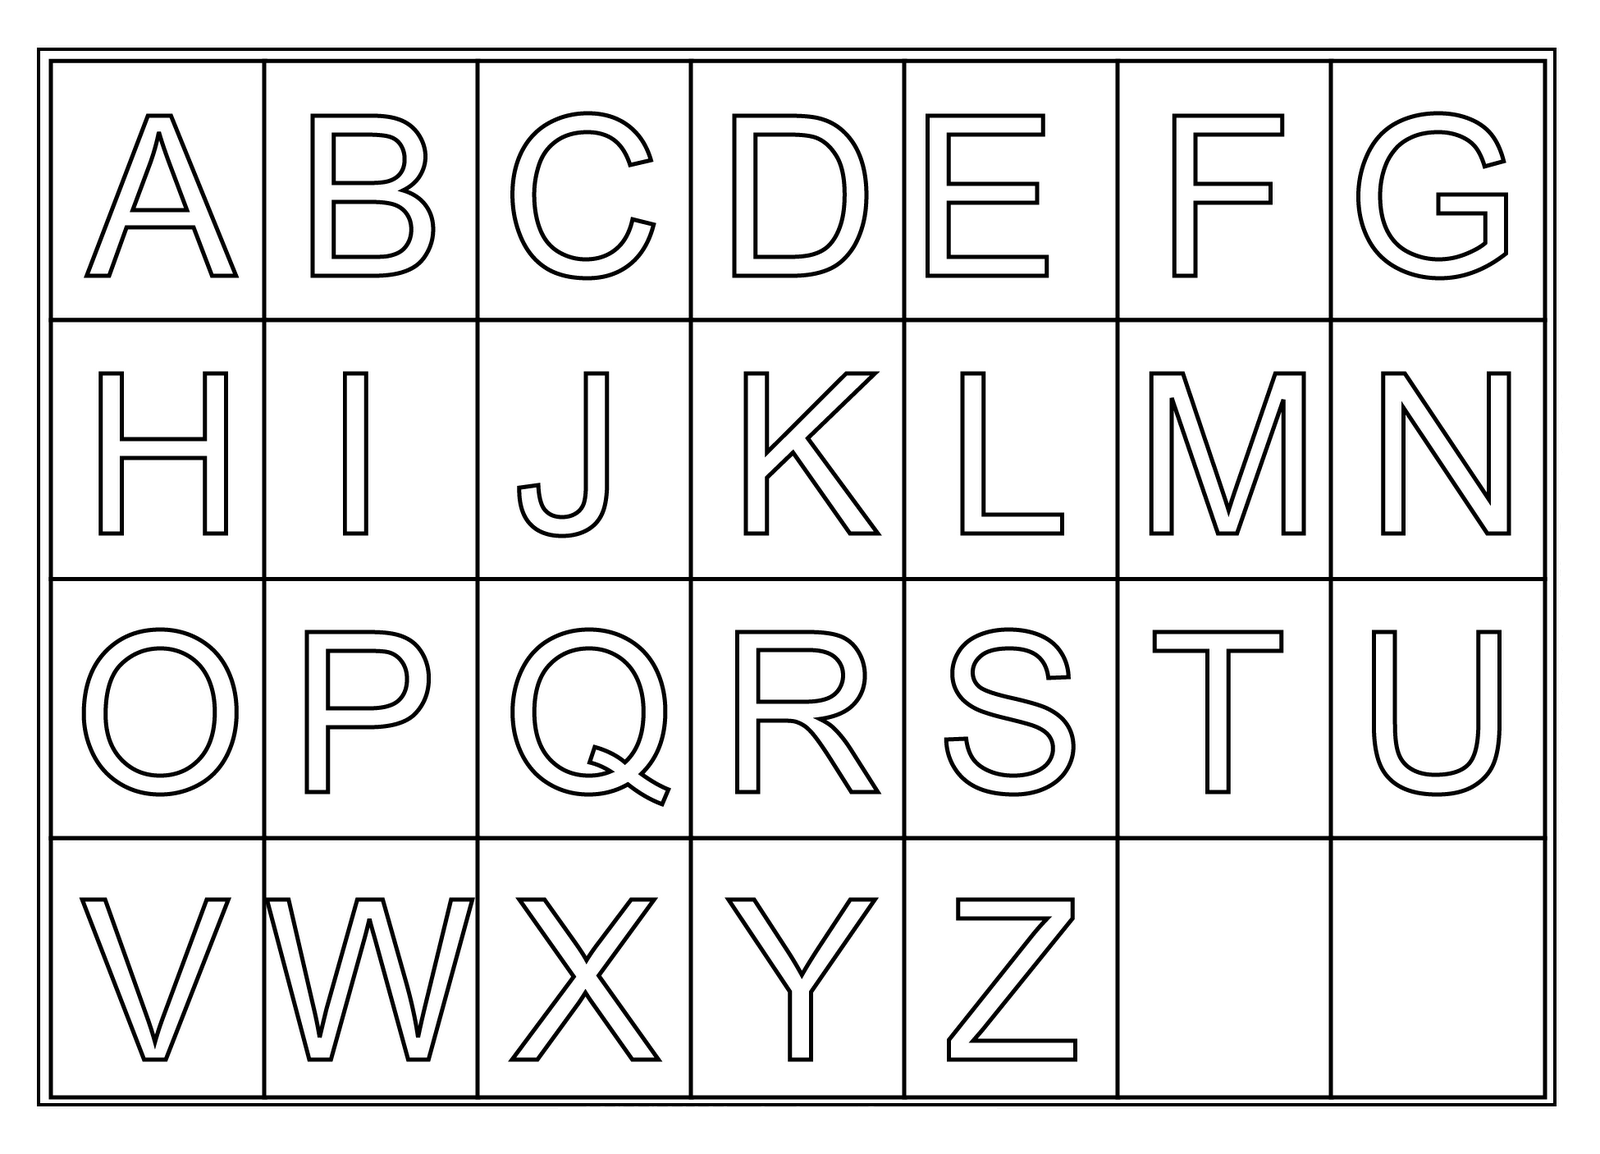 Worksheets On Letters For Preschoolers Printable